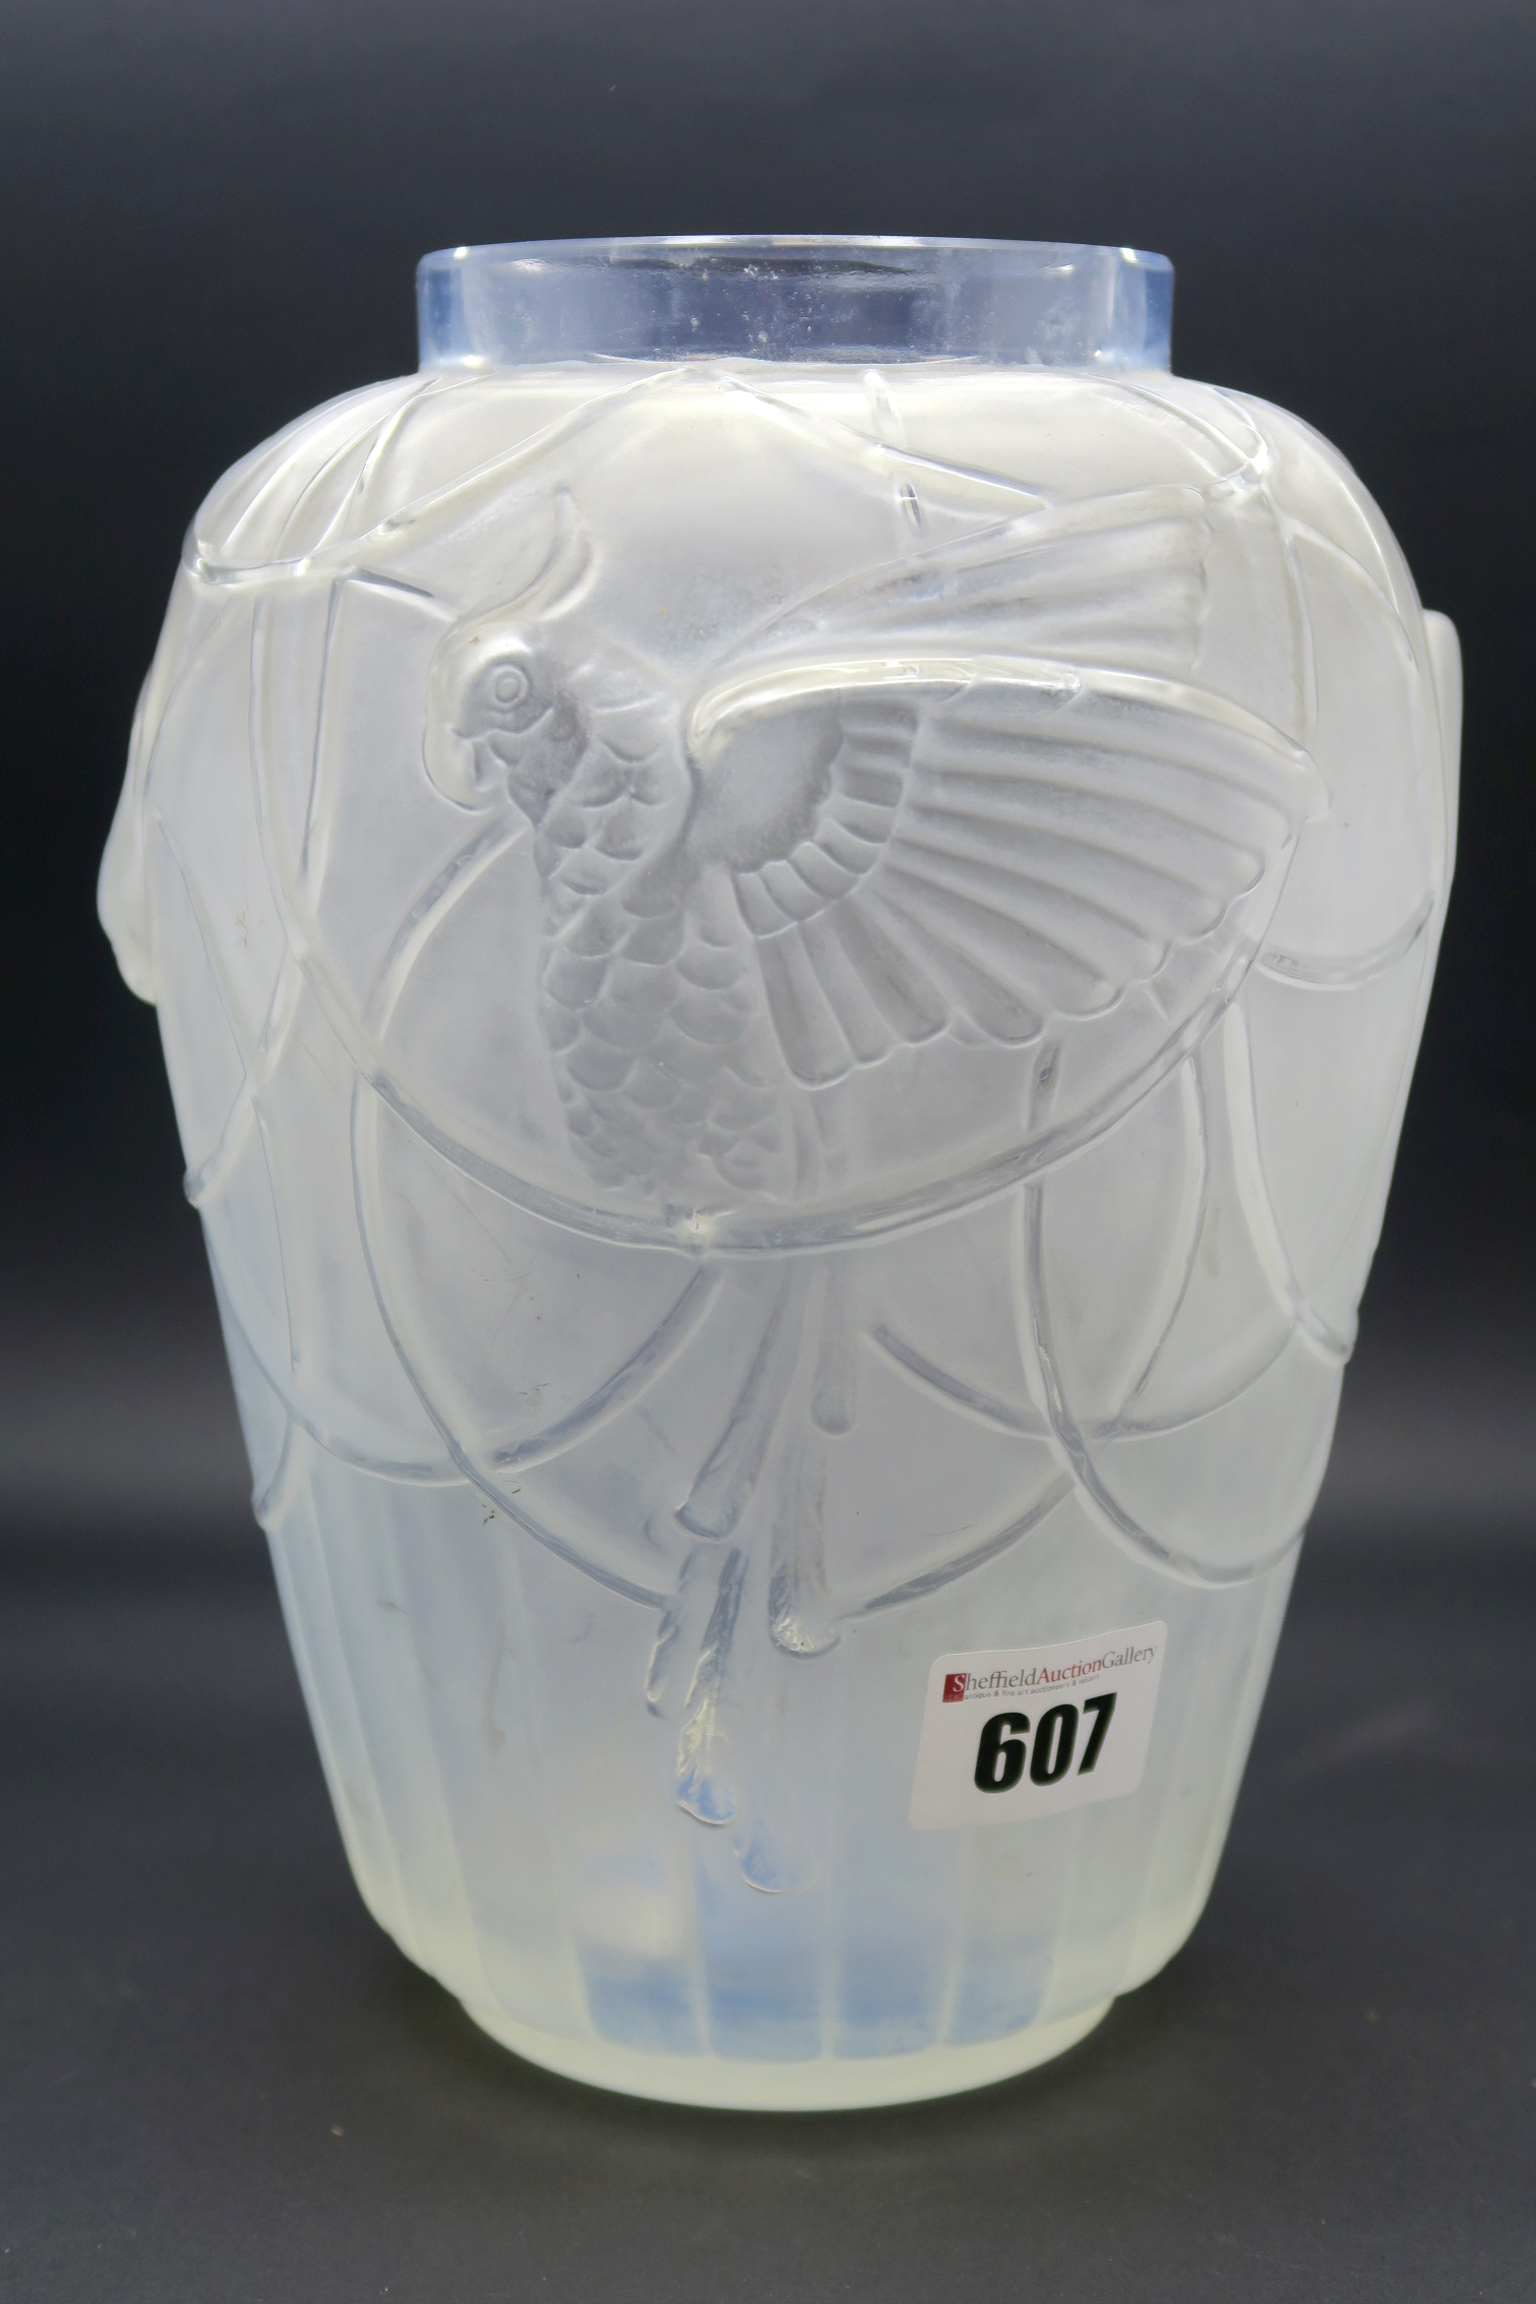 Lot 607 - A 1930's Sabino Frosted Glass Vase, of ovoid form, moulded with stylised budgerigars perched on